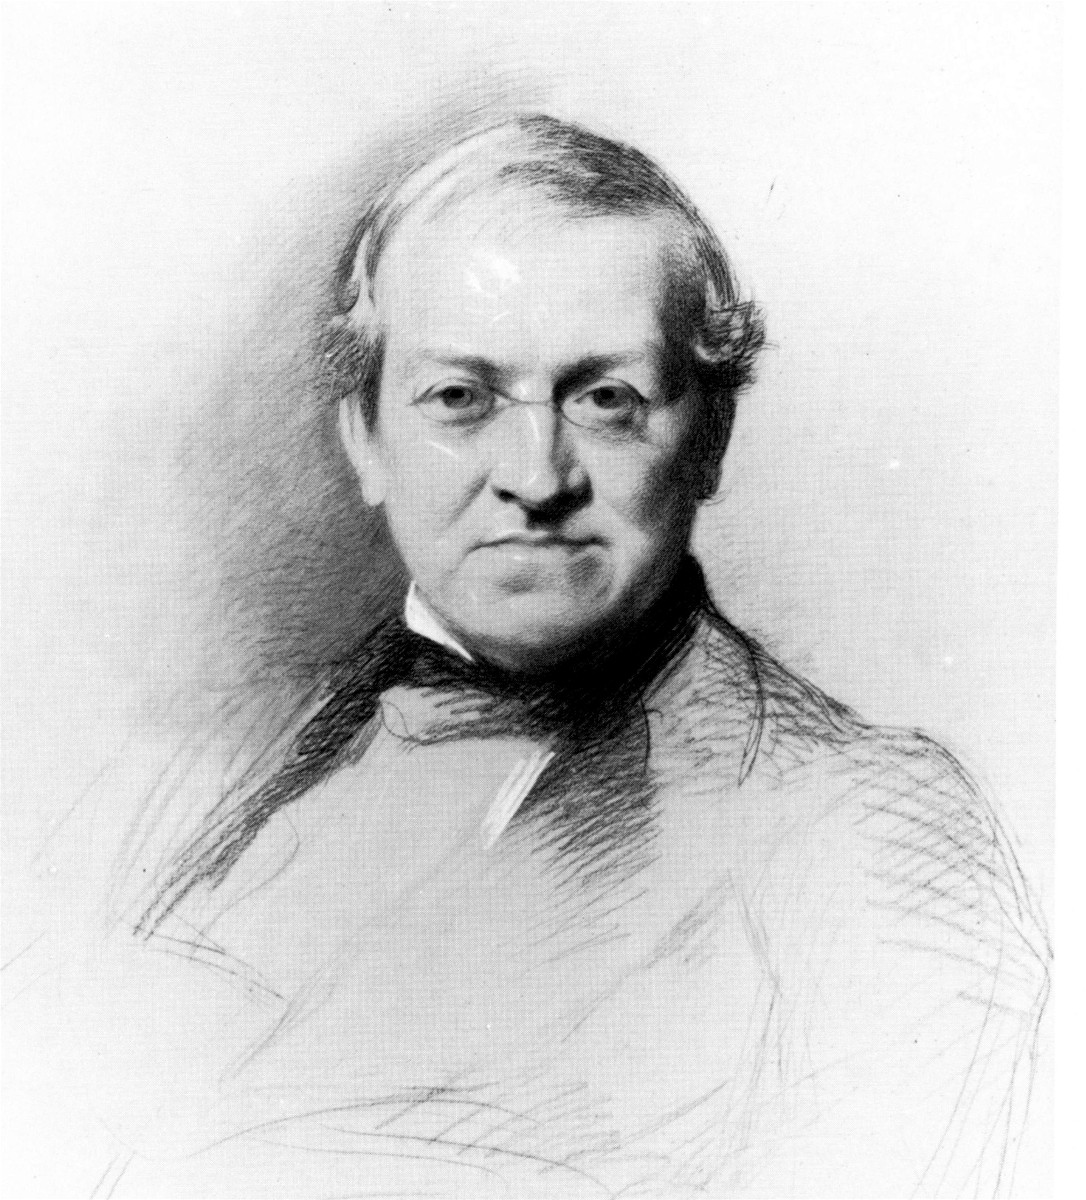 Image of Charles Wheatstone from Wikidata